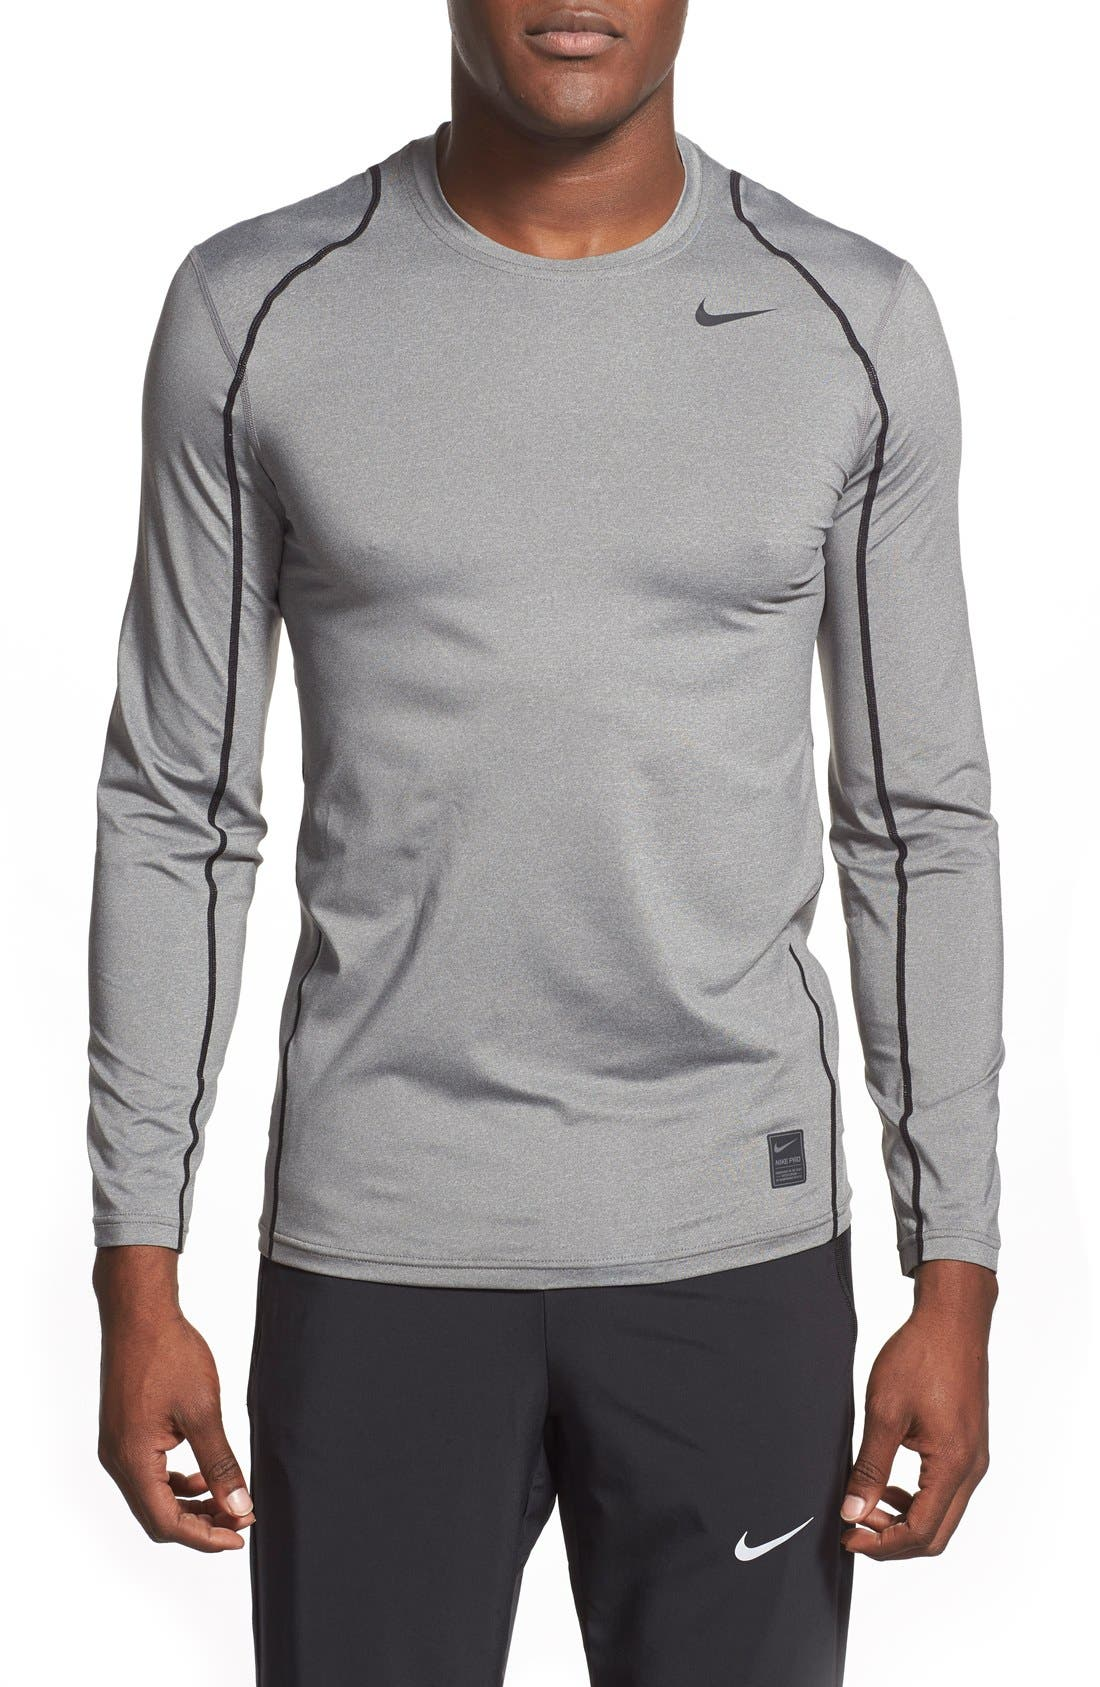 Alternate Image 1 Selected - Nike 'Pro Coo' Fitted Long Sleeve Dri-FIT T-Shirt